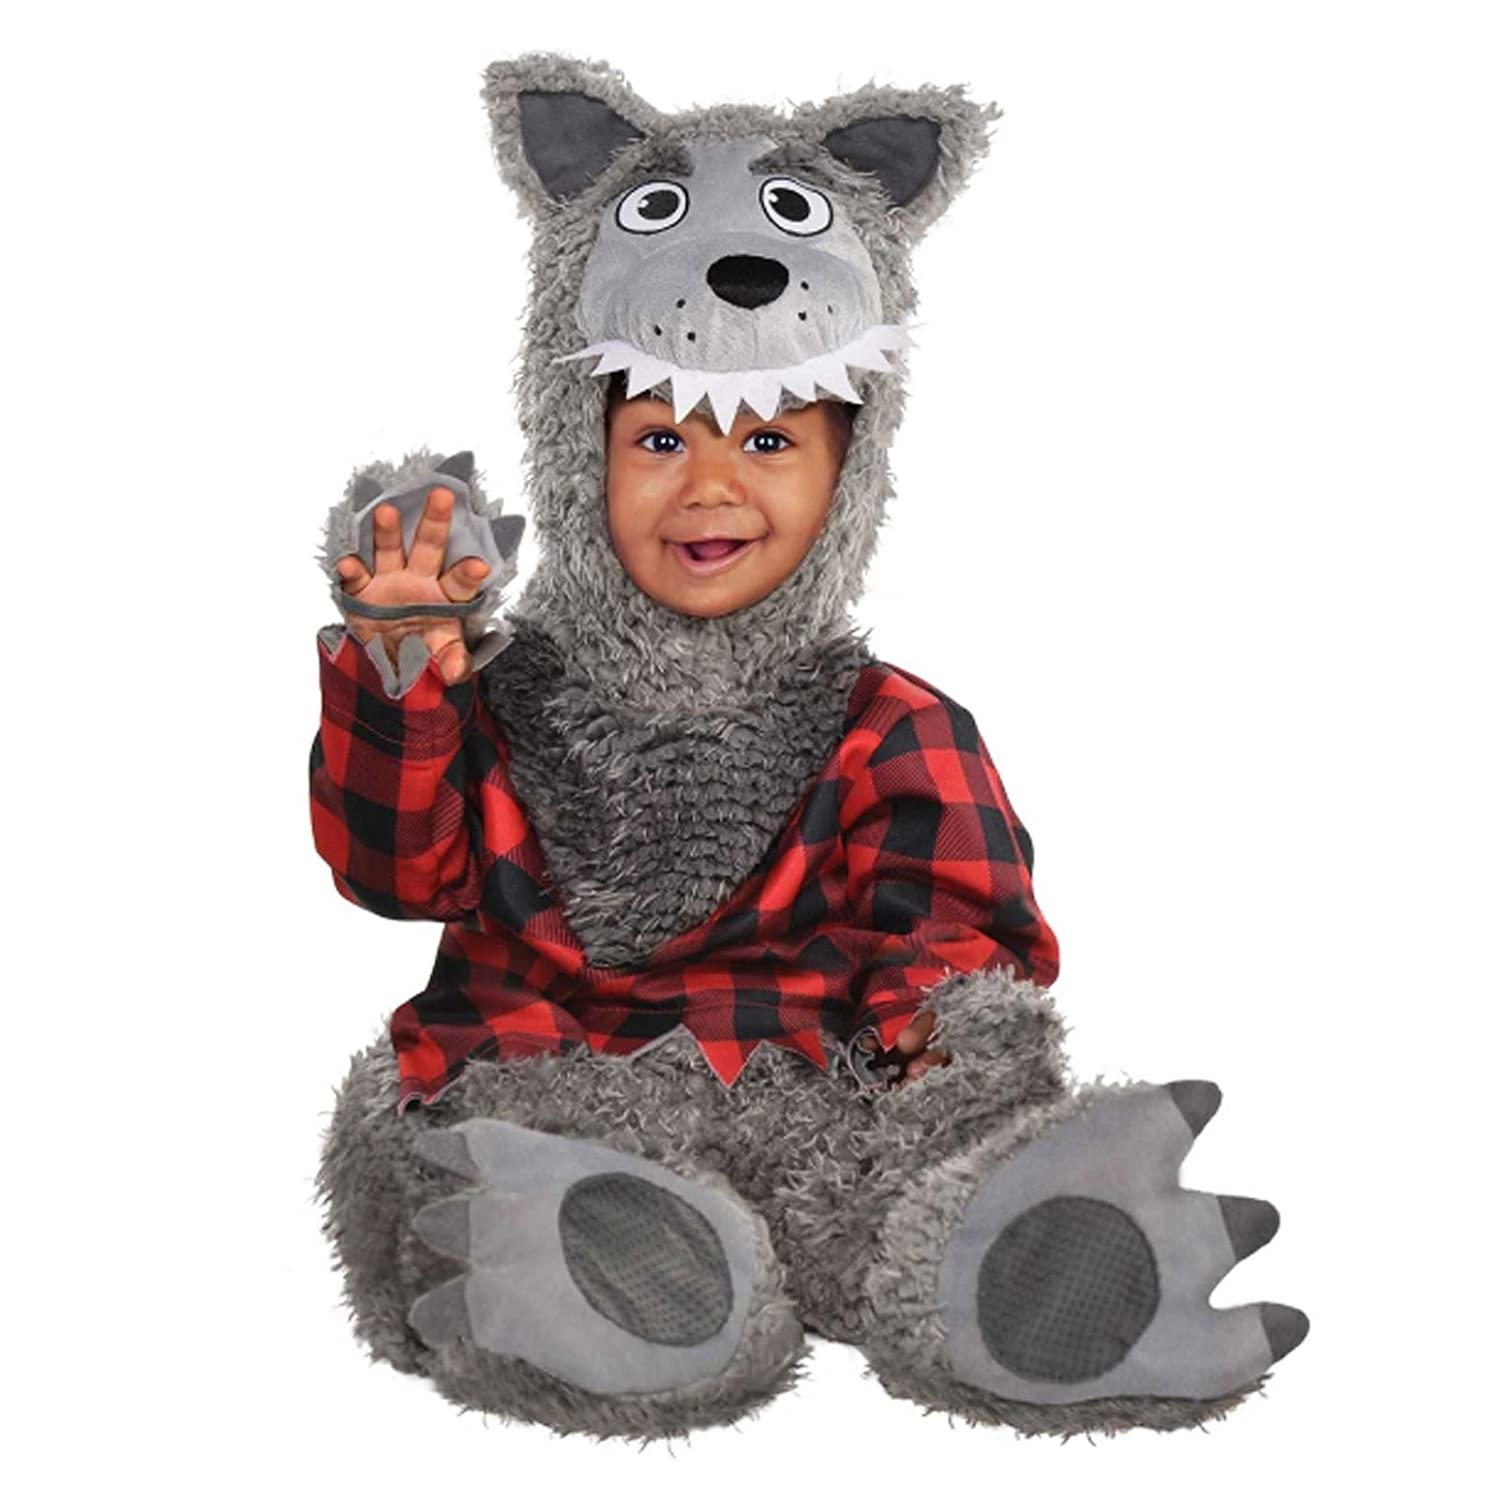 0-6 Months Baby Big Bad Wolf Animal Werewolf Halloween Babies Boys Girl Fancy Dress Costume Fancy Dress VIP